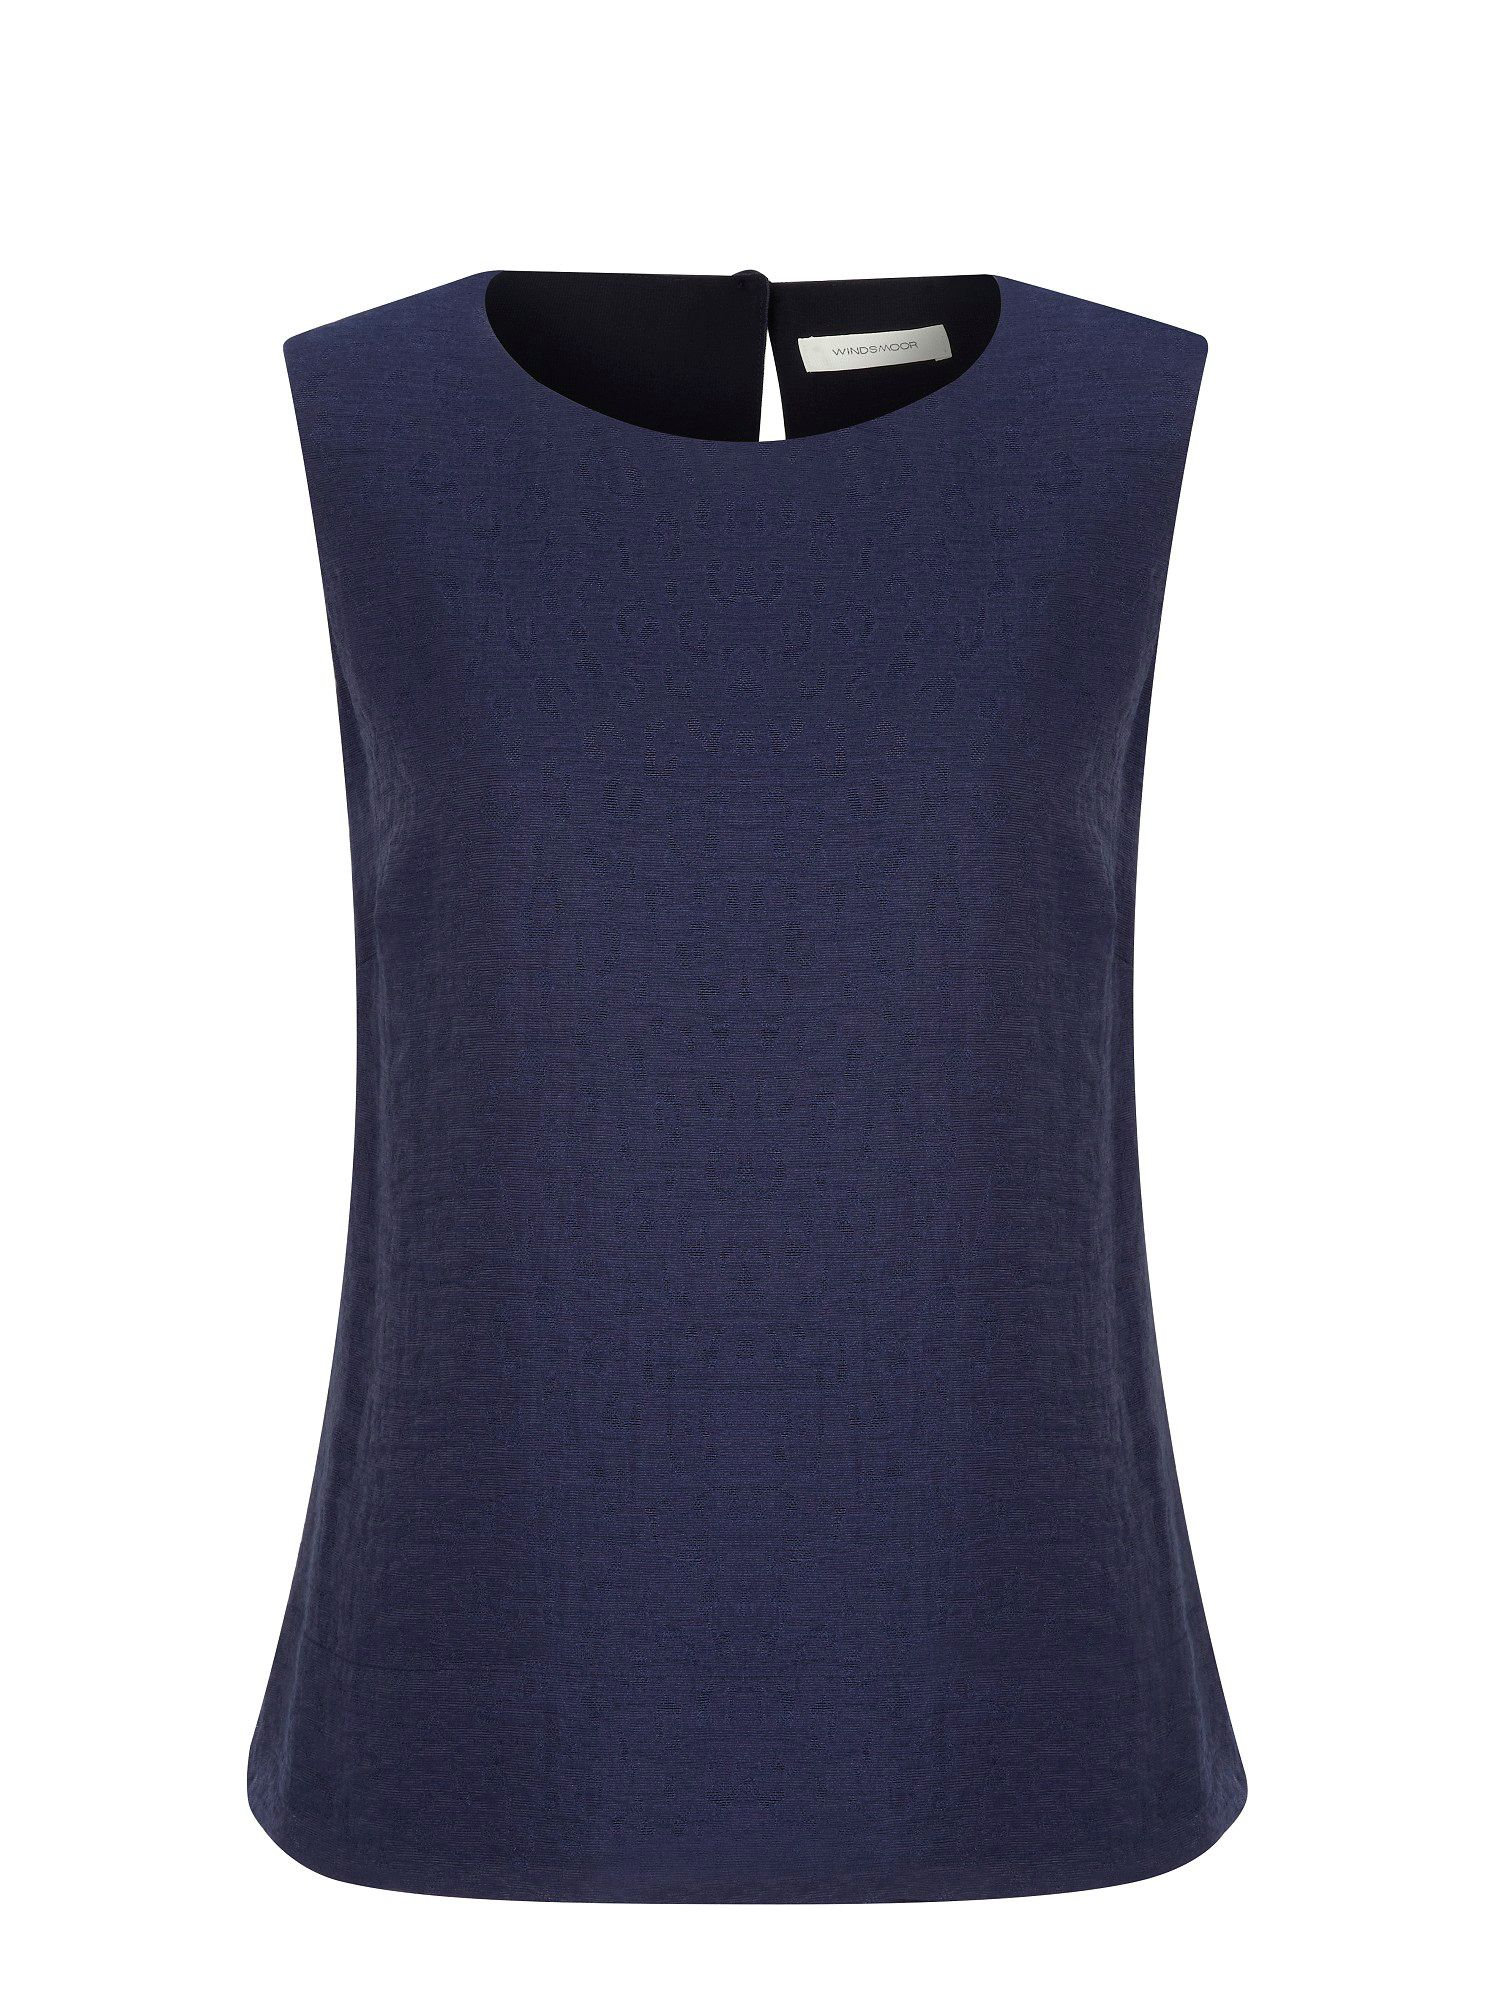 Navy jacquard shell top